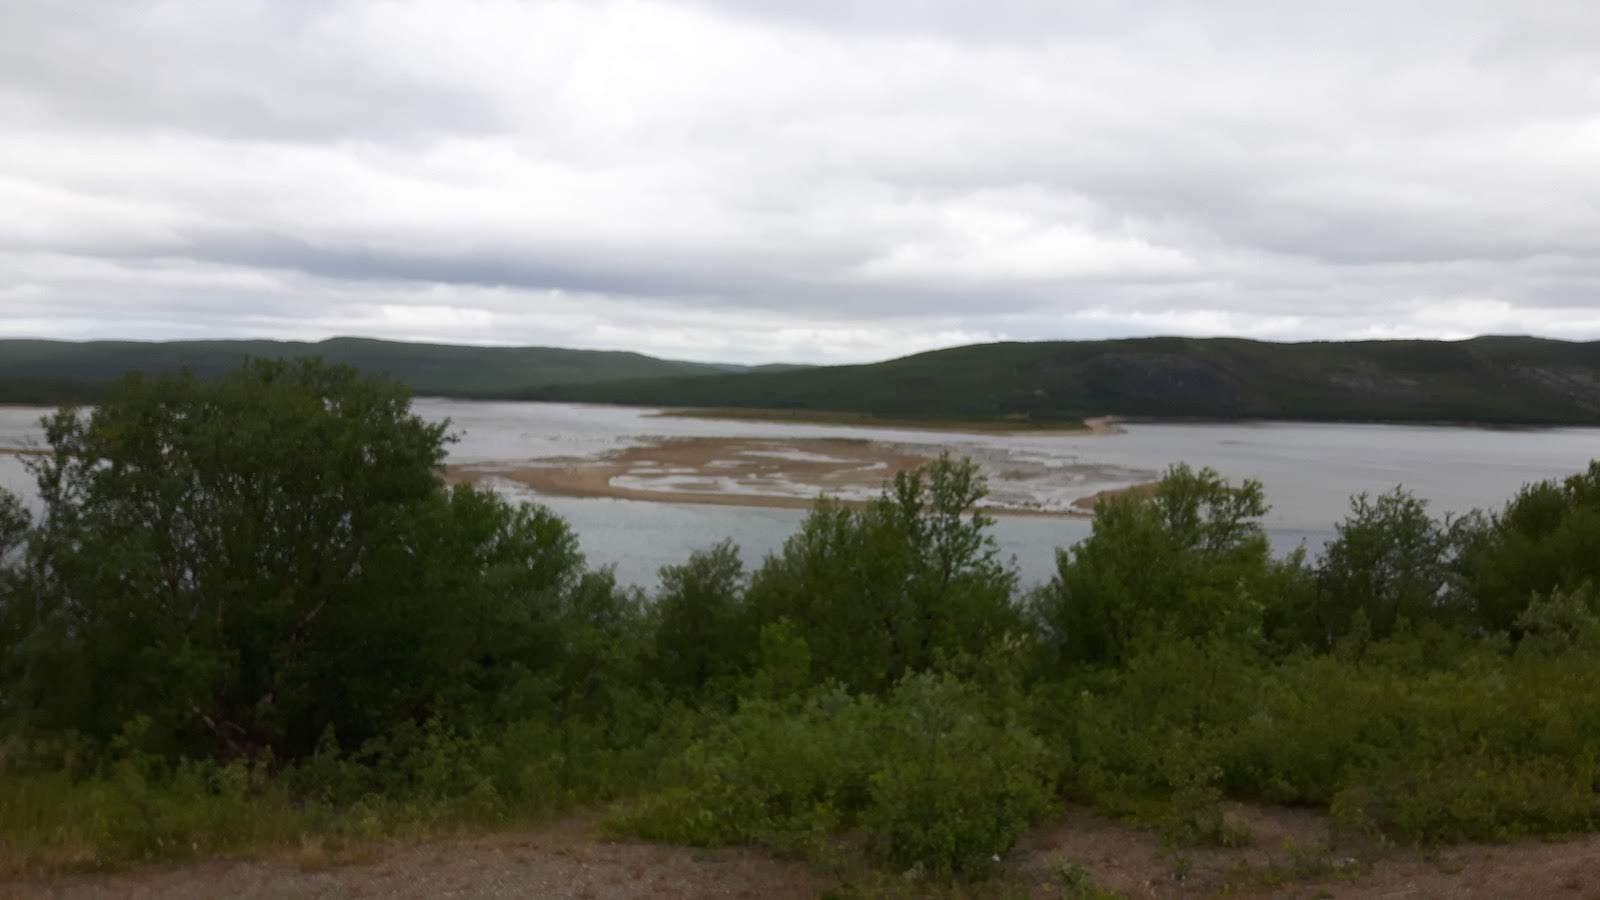 On the road from Kirkenes Norway